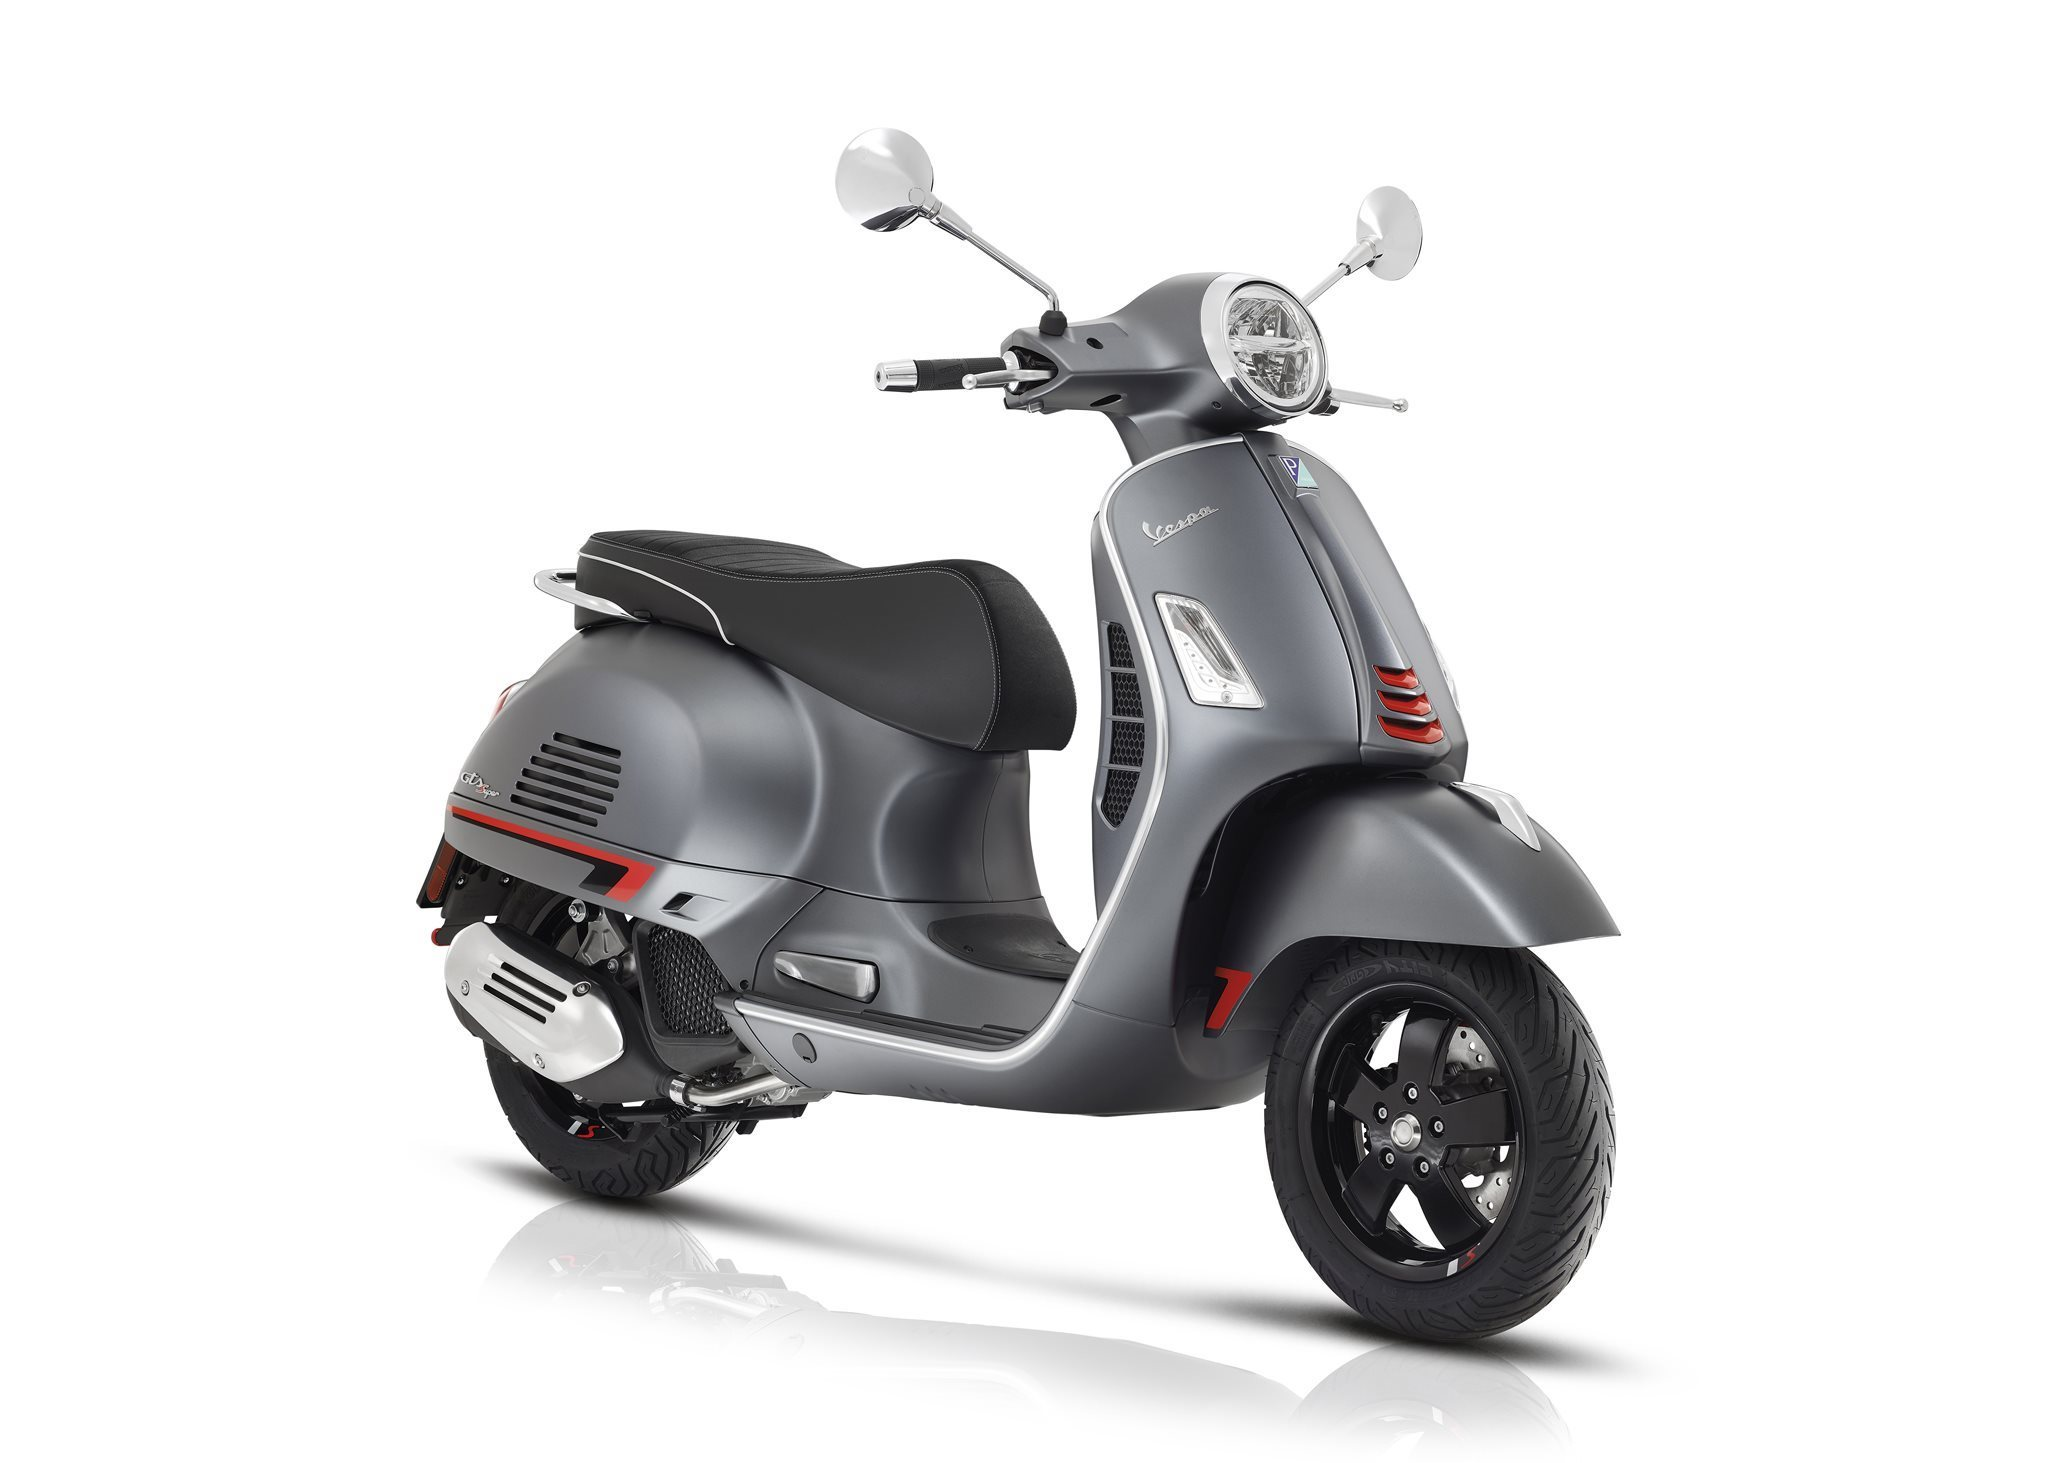 Vespa Gts 125 I E Super Sport All Technical Data Of The Model Gts 125 I E Super Sport From Vespa